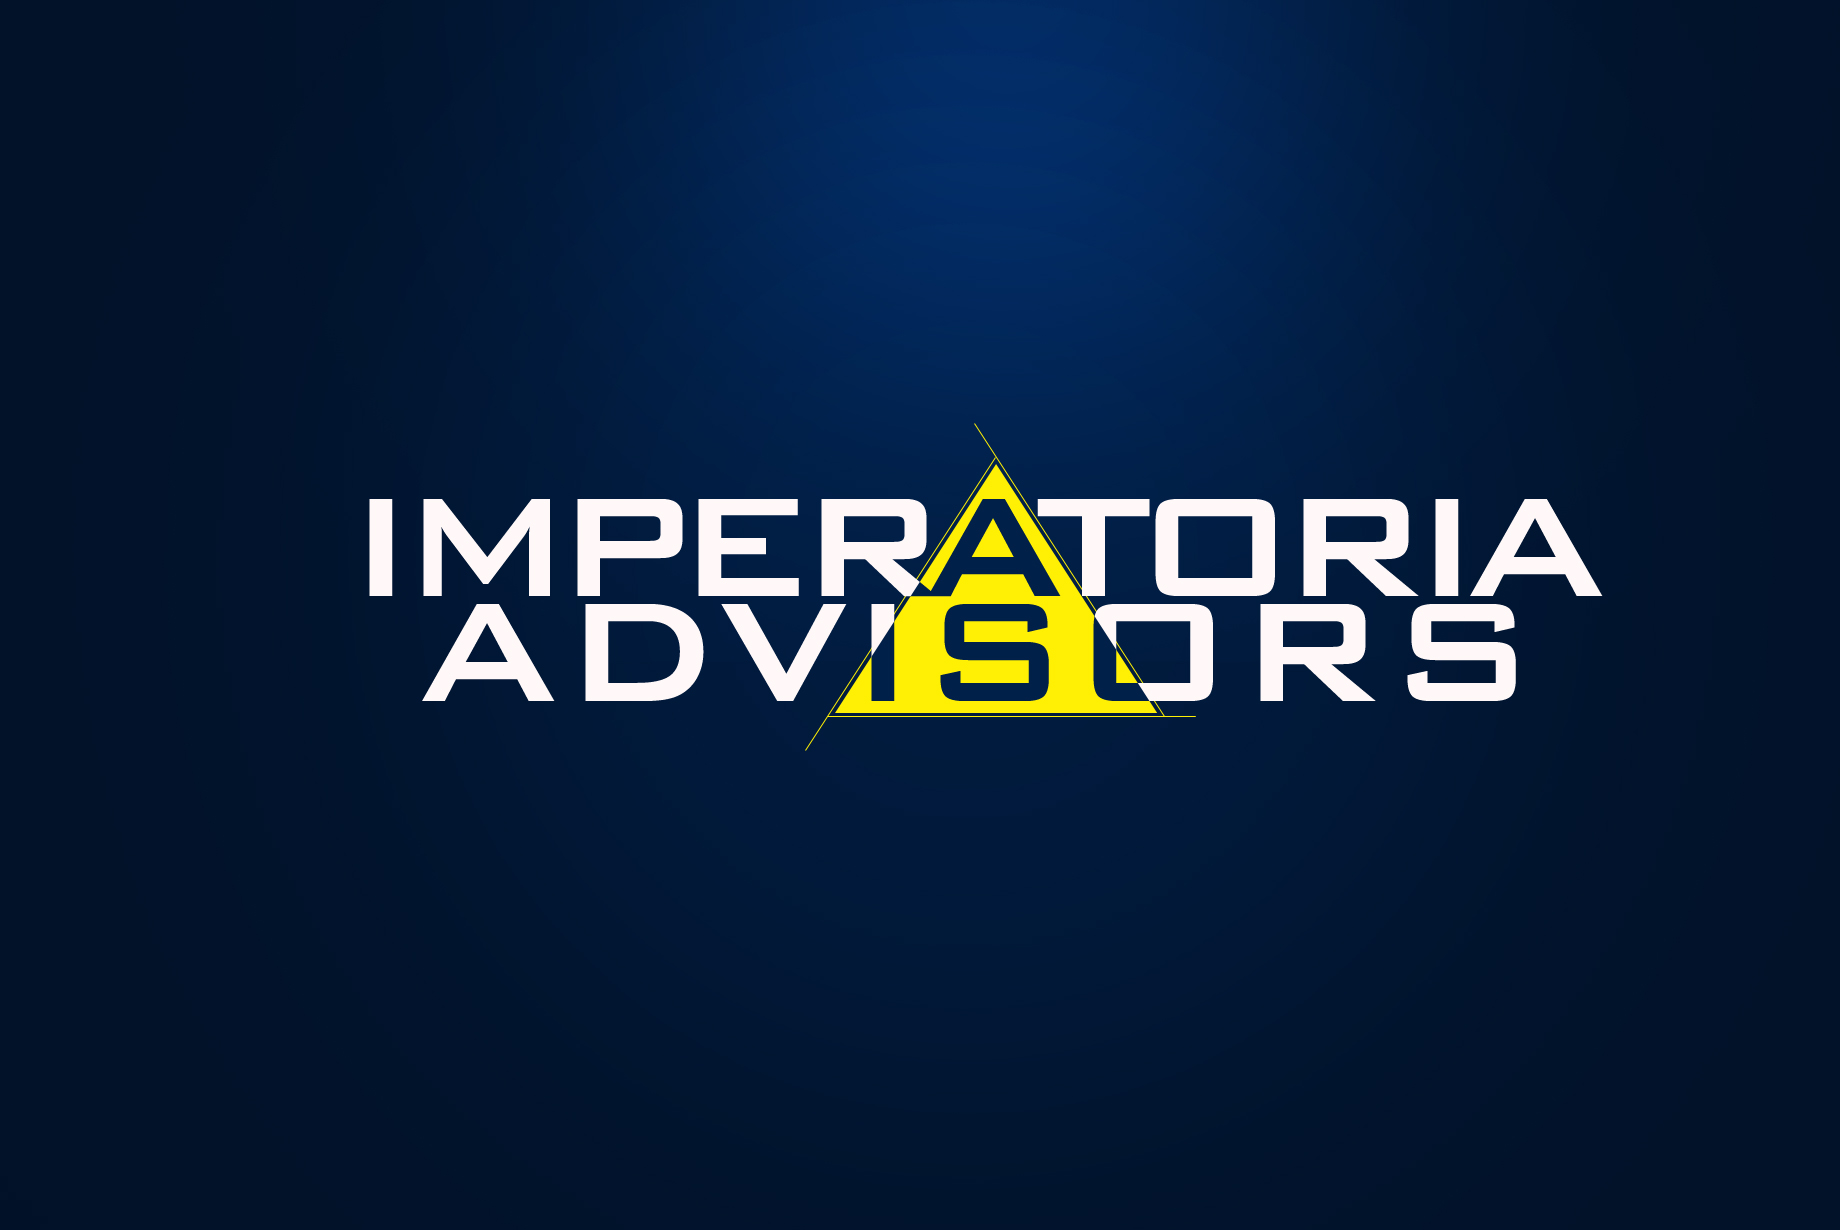 Logo Design by Jan Chua - Entry No. 83 in the Logo Design Contest Unique Logo Design Wanted for Imperatoria Advisors.